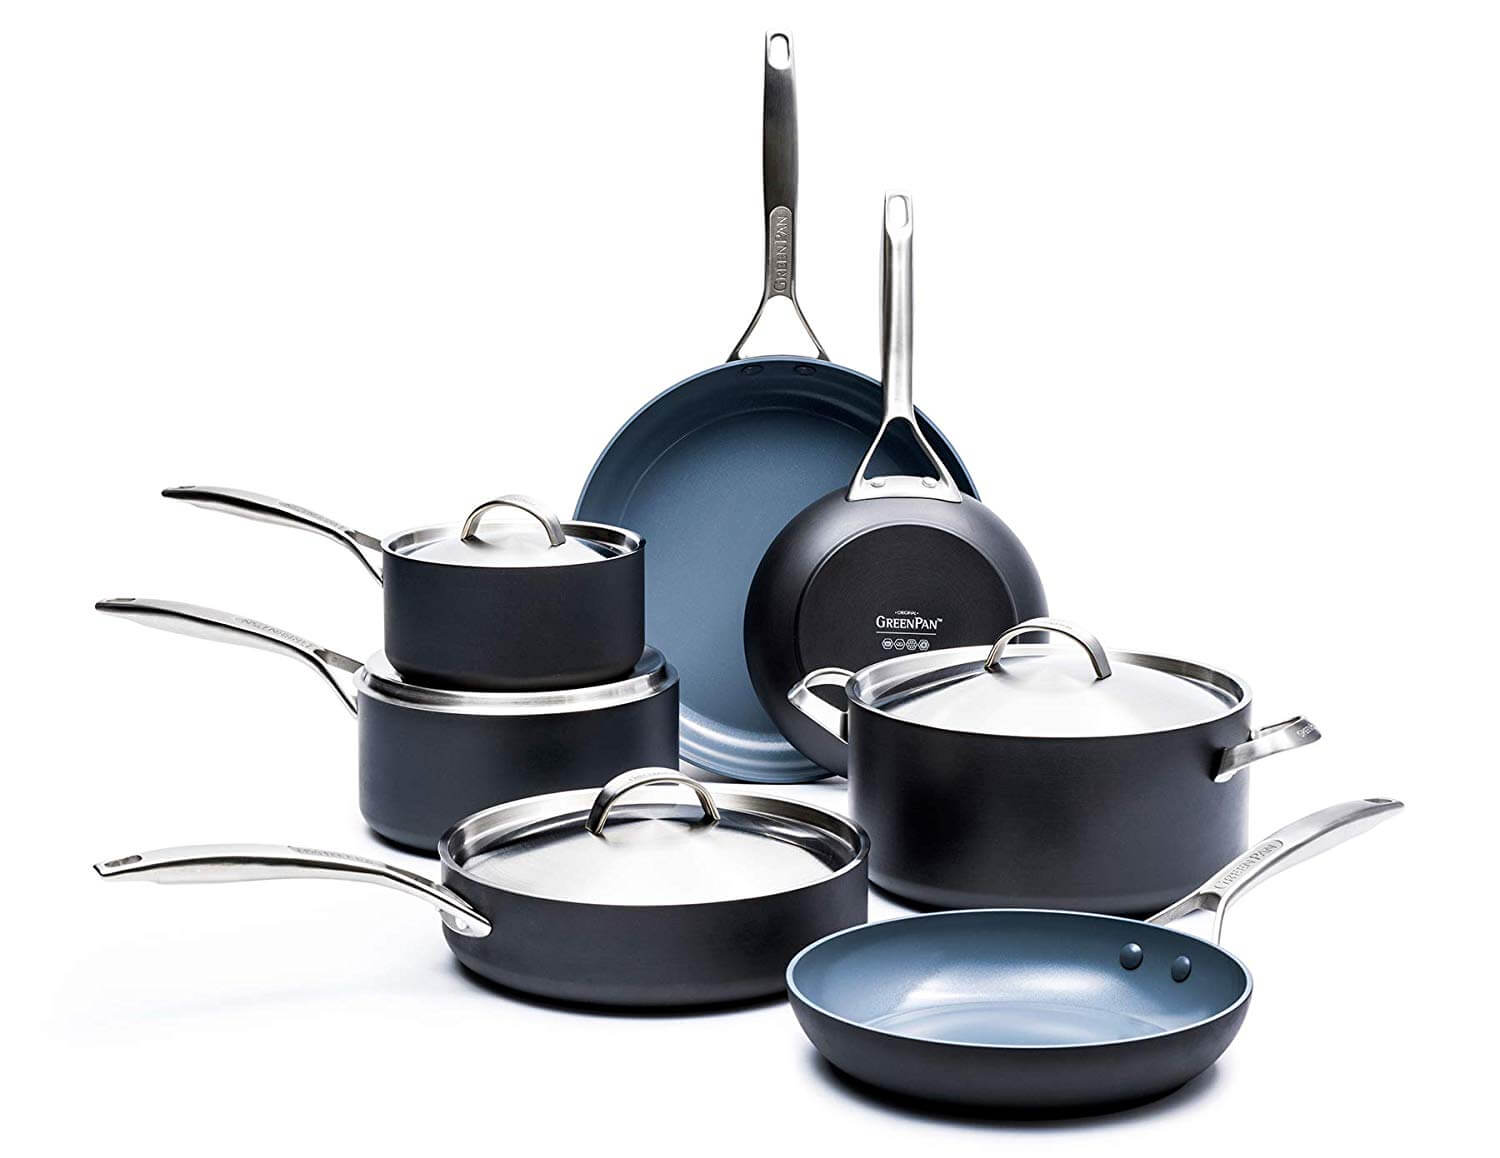 GreenPan Paris Ceramic Cookware Set